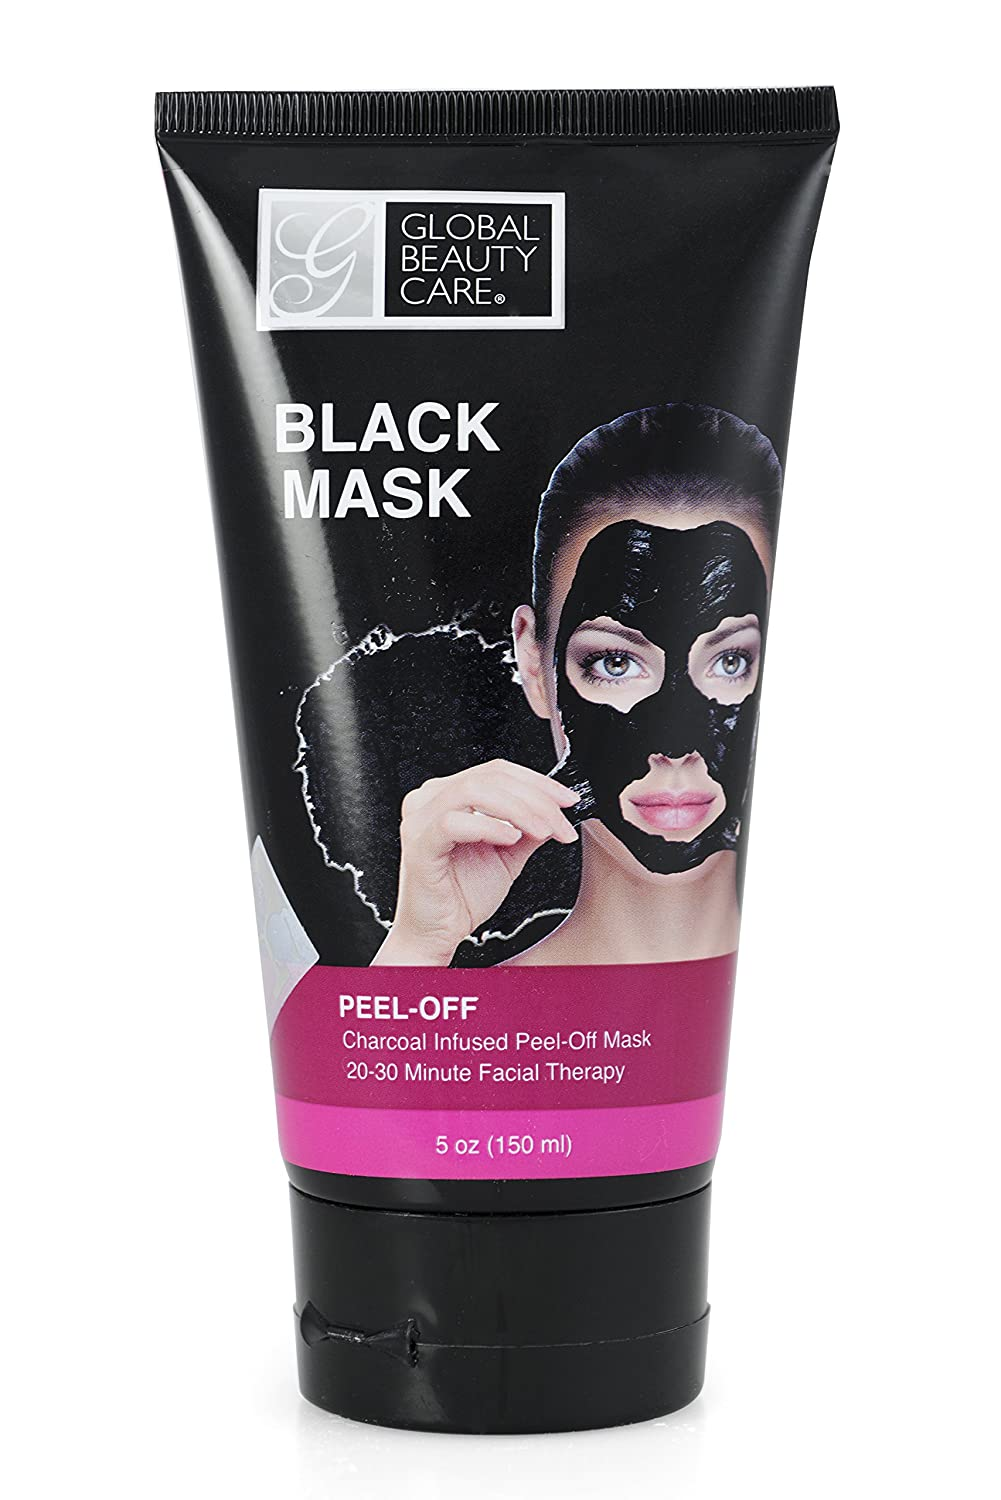 Black Mask: Charcoal Infused Peel-Off Mask